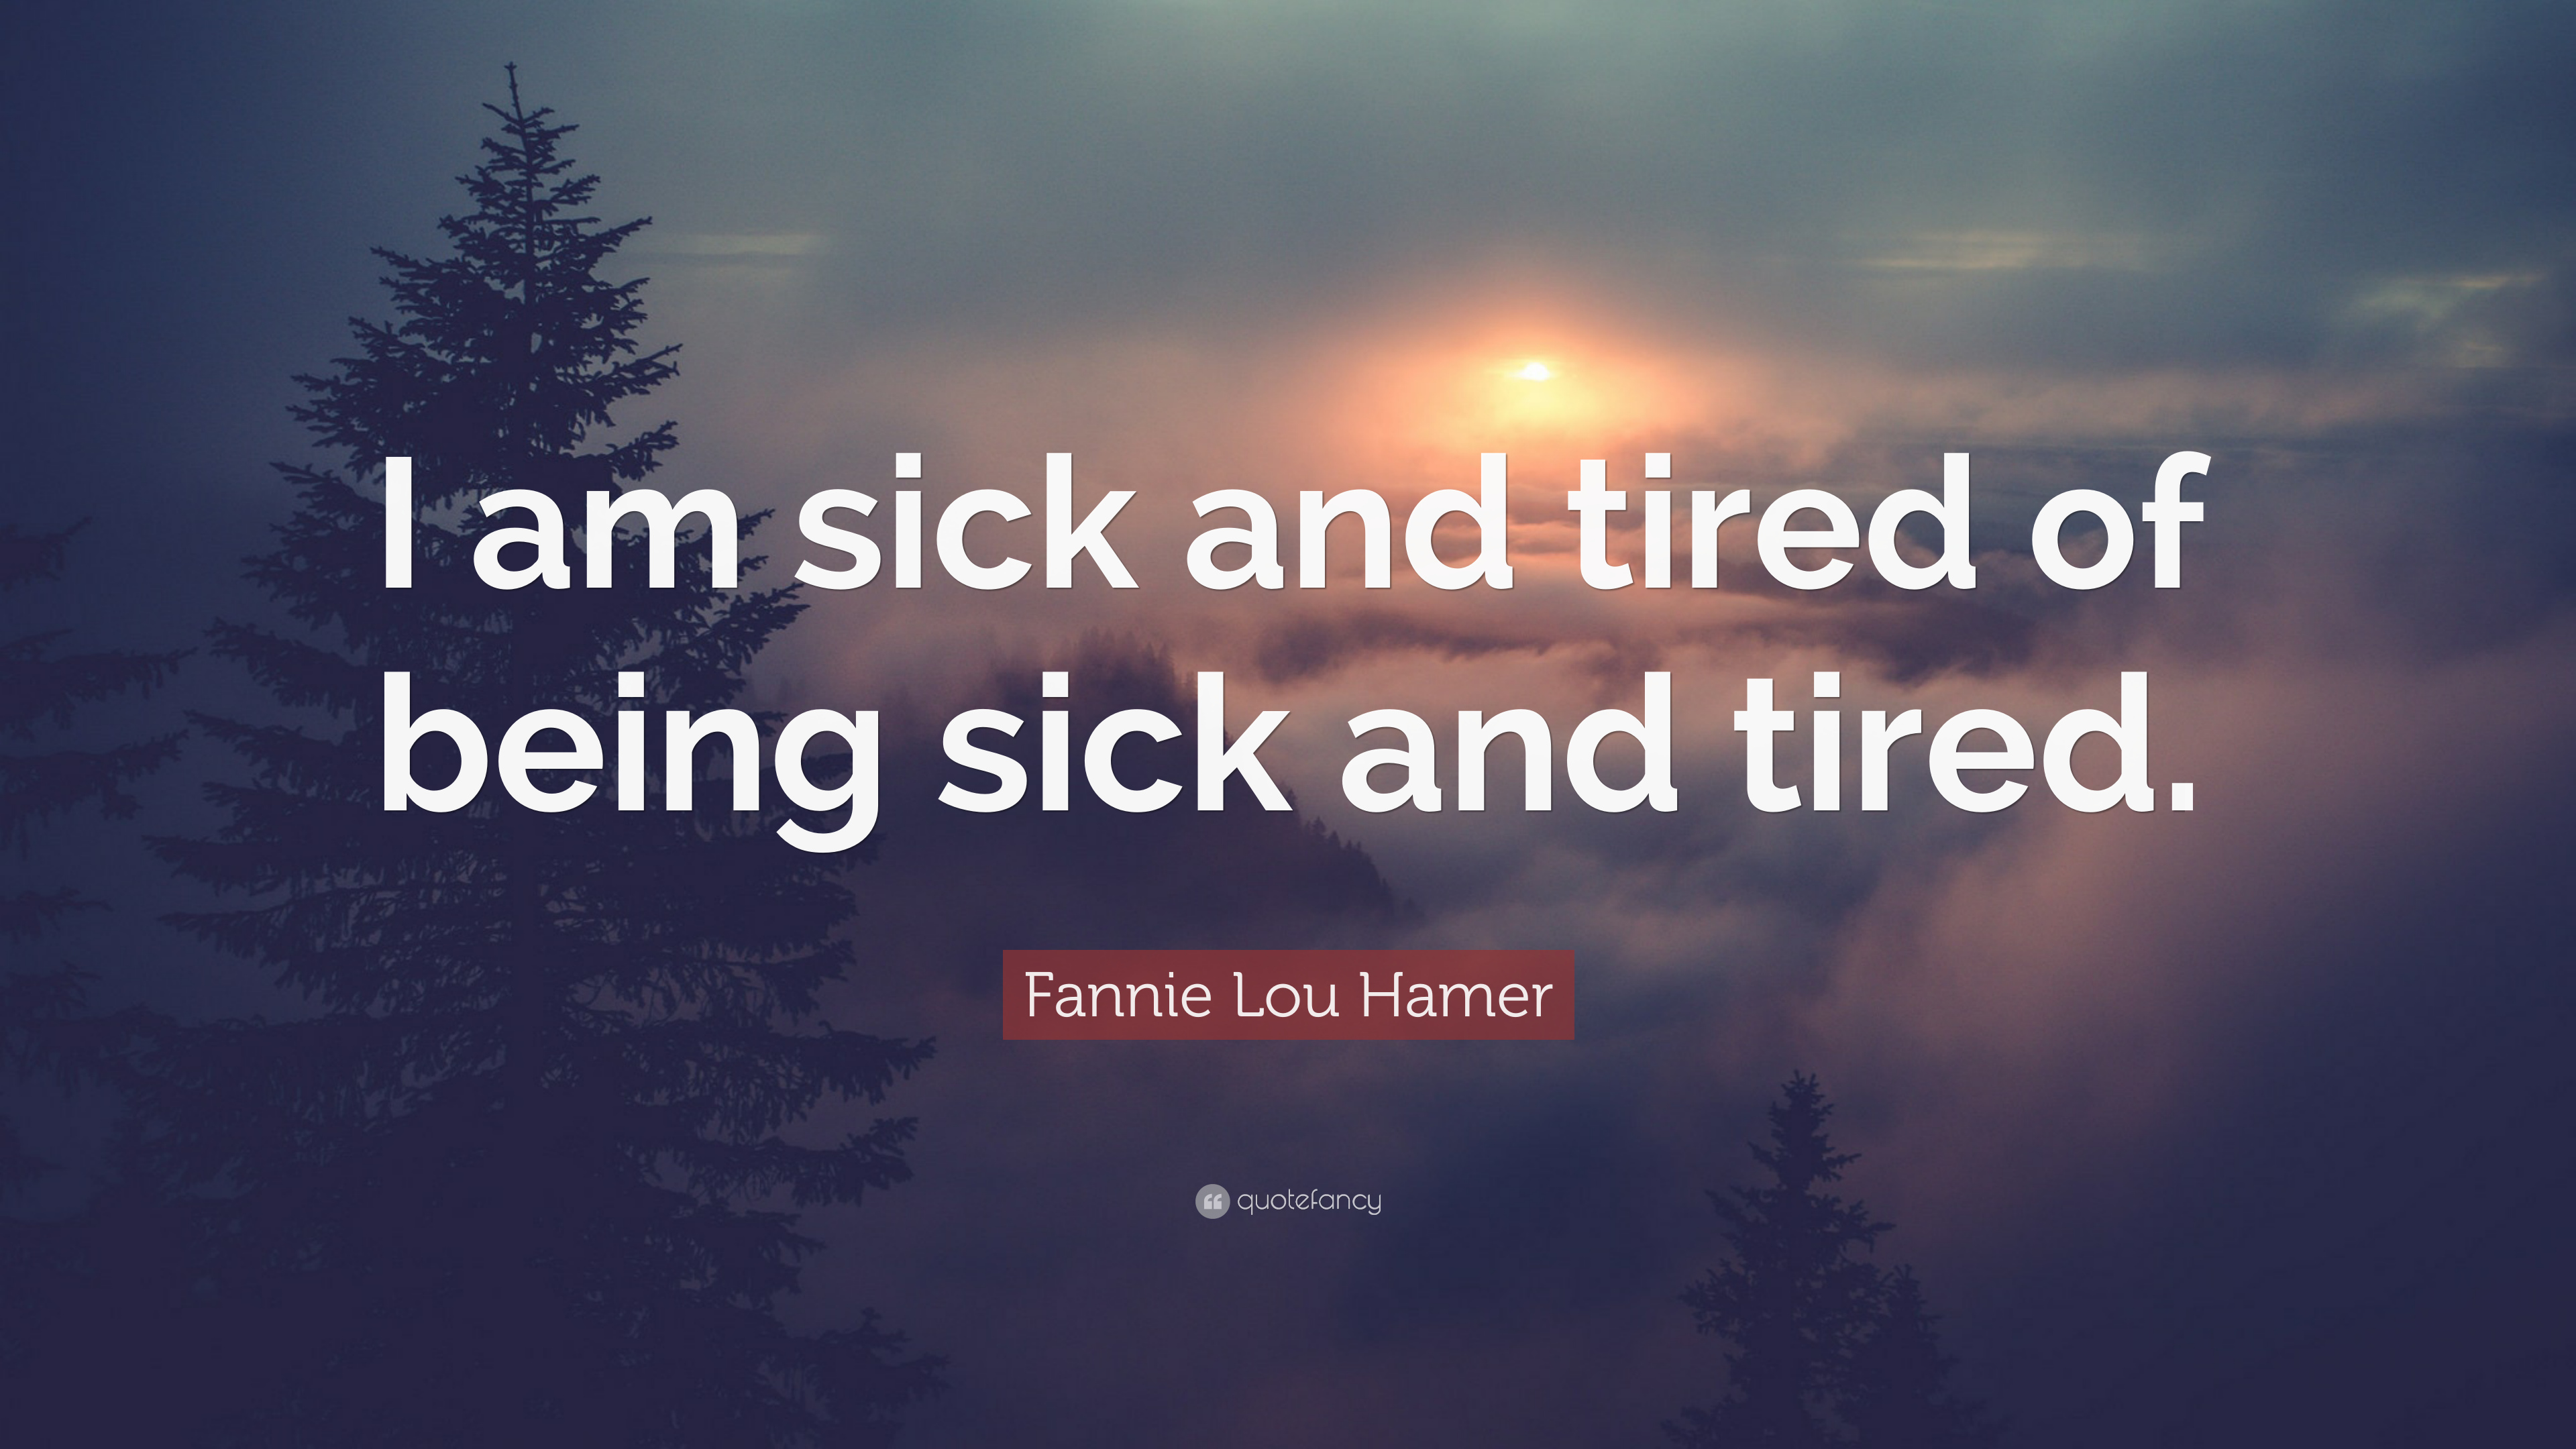 Fannie lou hamer quote i am sick and tired of being sick and tired fannie lou hamer quote i am sick and tired of being sick and tired altavistaventures Choice Image